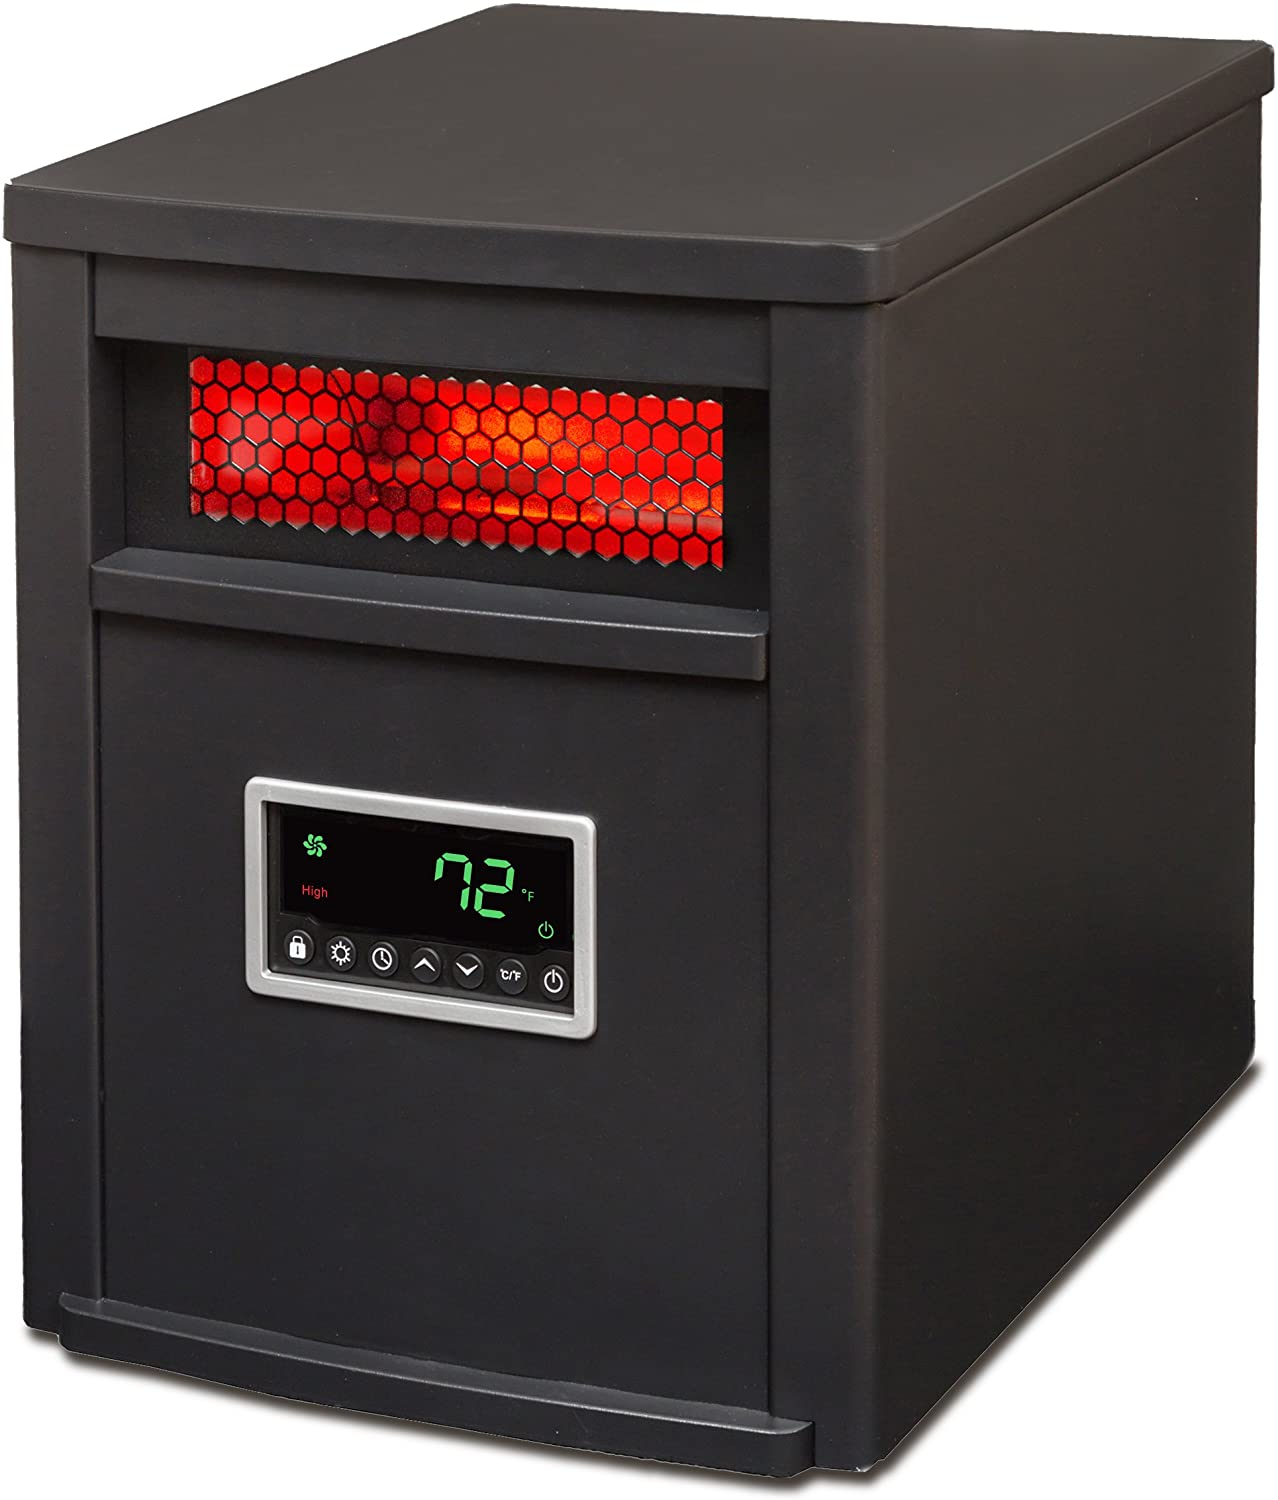 Lifesmart large room 6 element infrared heater with remote